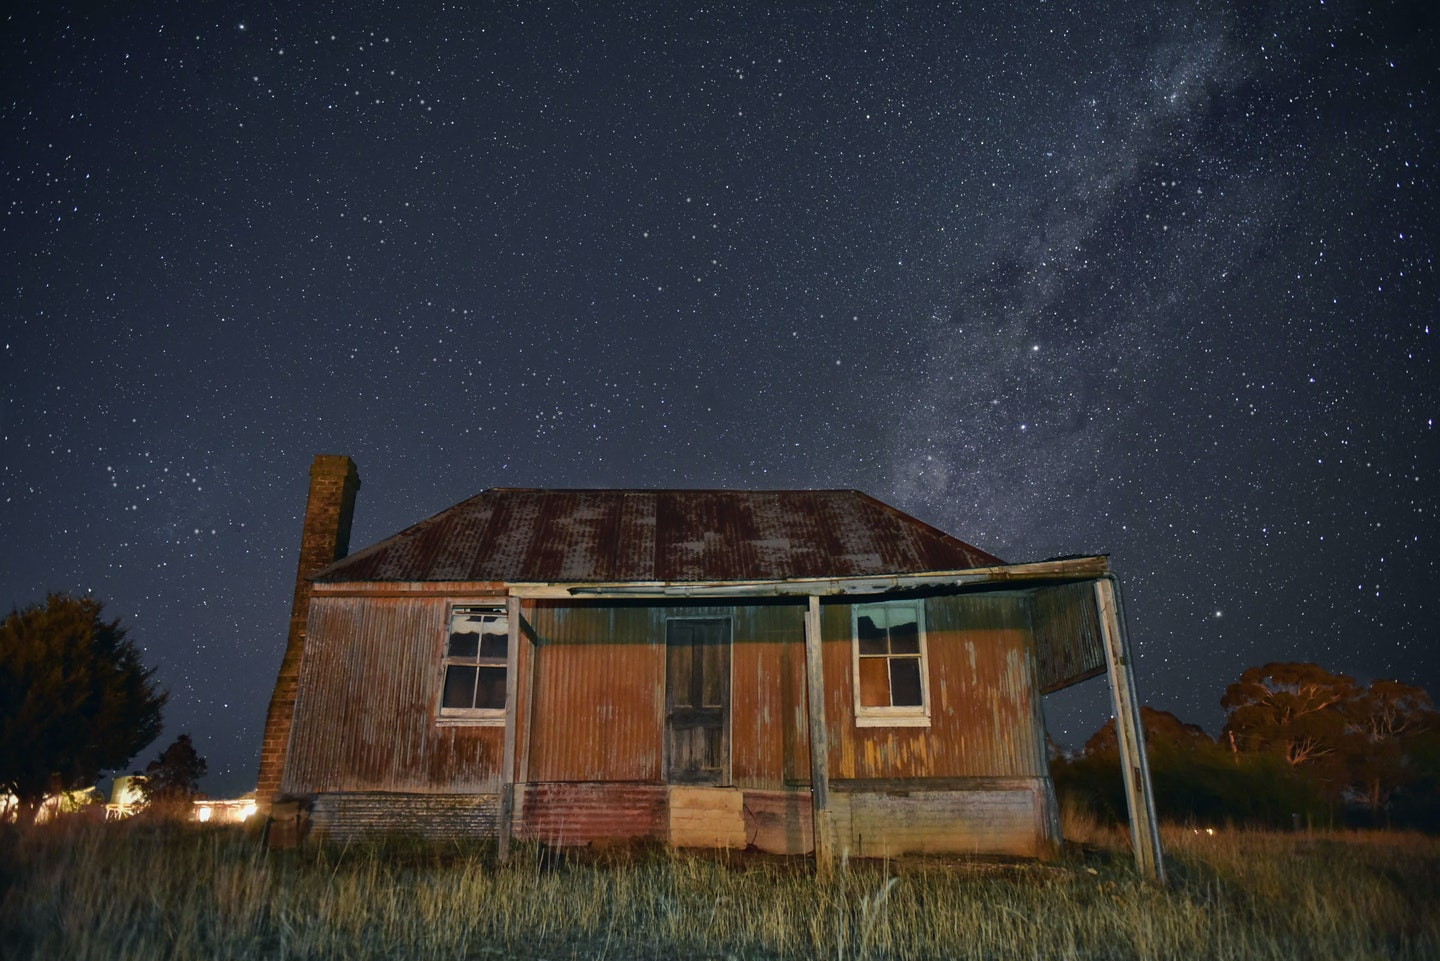 Emma Rolls, 'Under the stars', Orange, NSW.